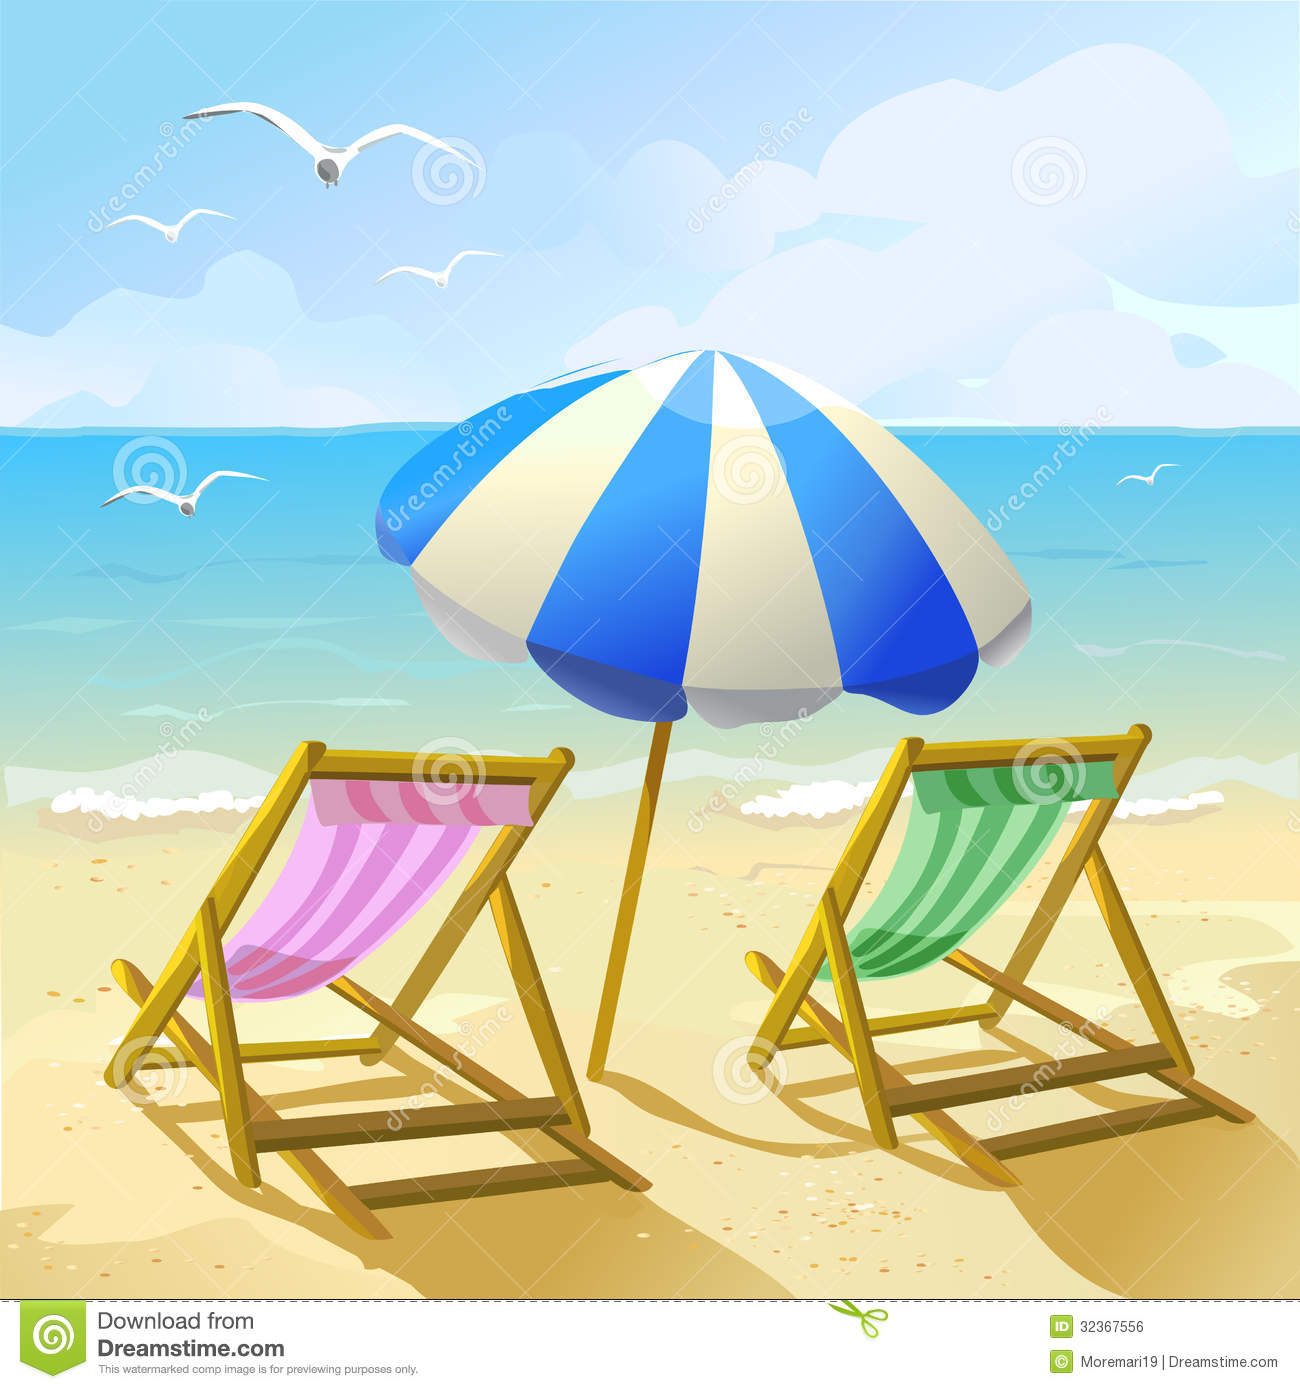 Beach With Sun Umbrella And Two Lounge Chairs Royalty Free Stock Image